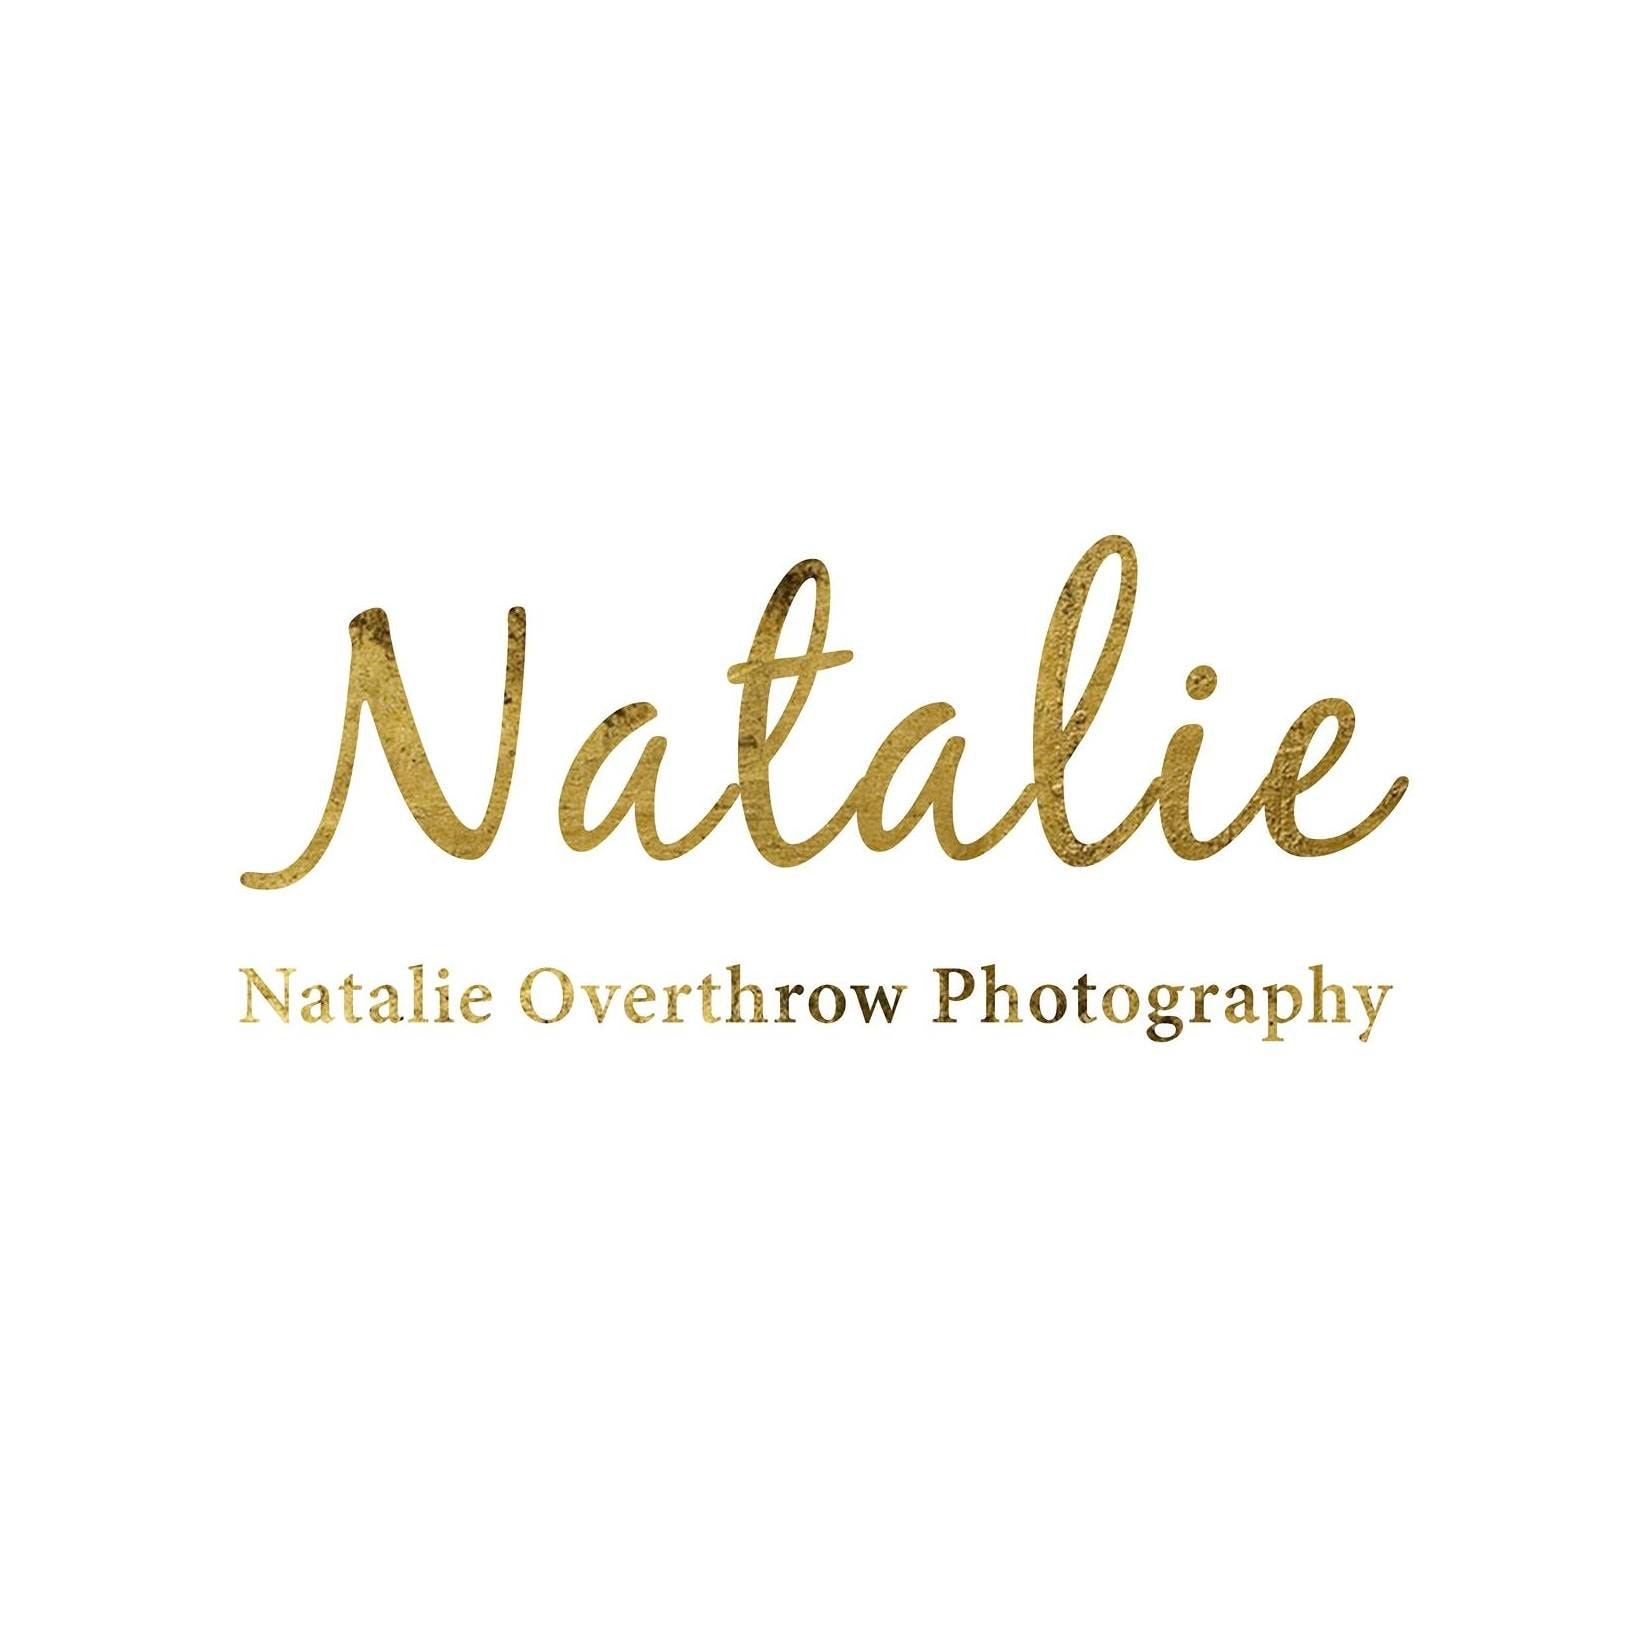 Go to natalie overthrow's profile